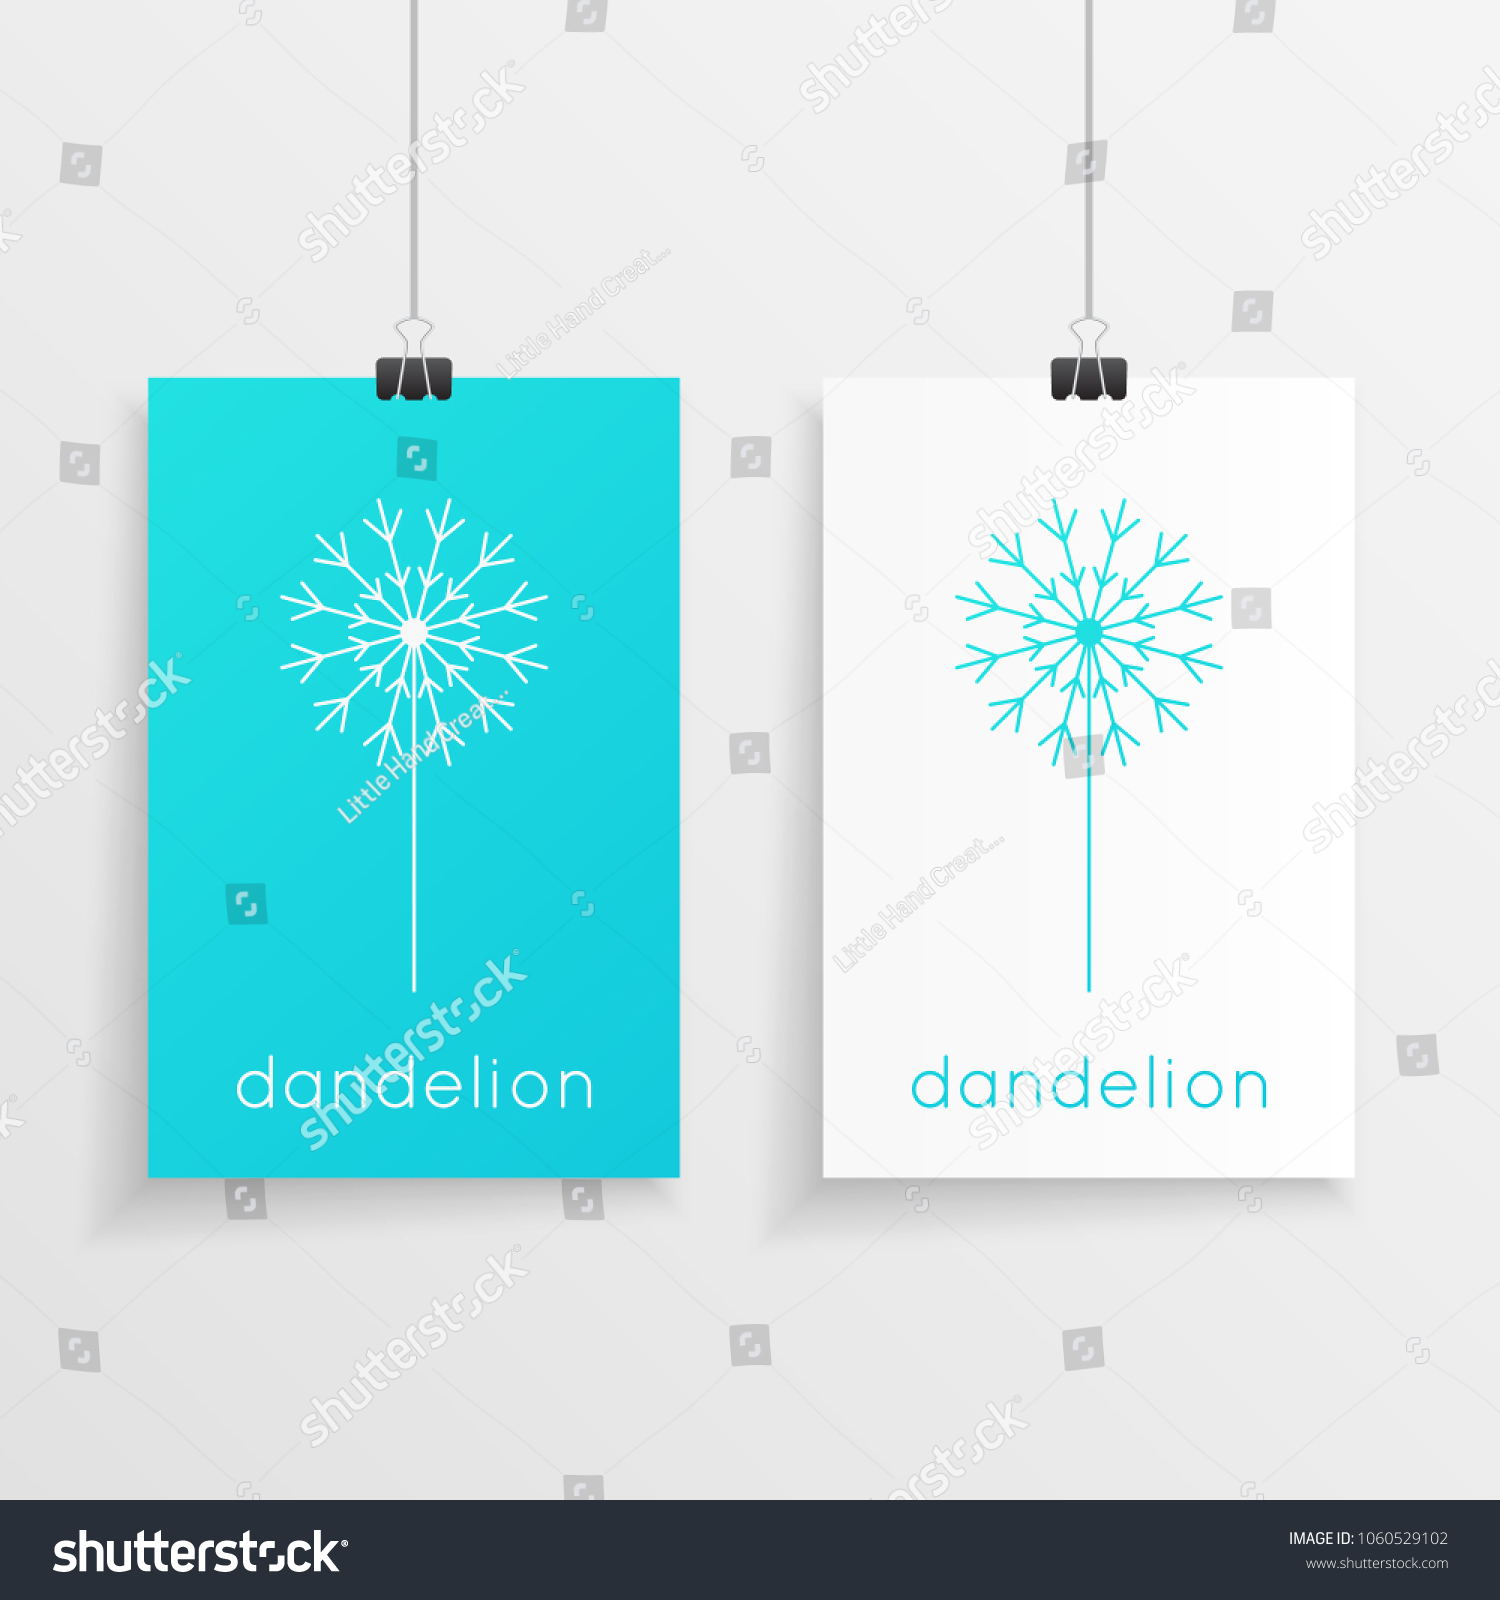 Geometric dandelion flower design blue white stock photo photo geometric dandelion flower design in blue and white colors on a hanging blank paper like art ccuart Image collections